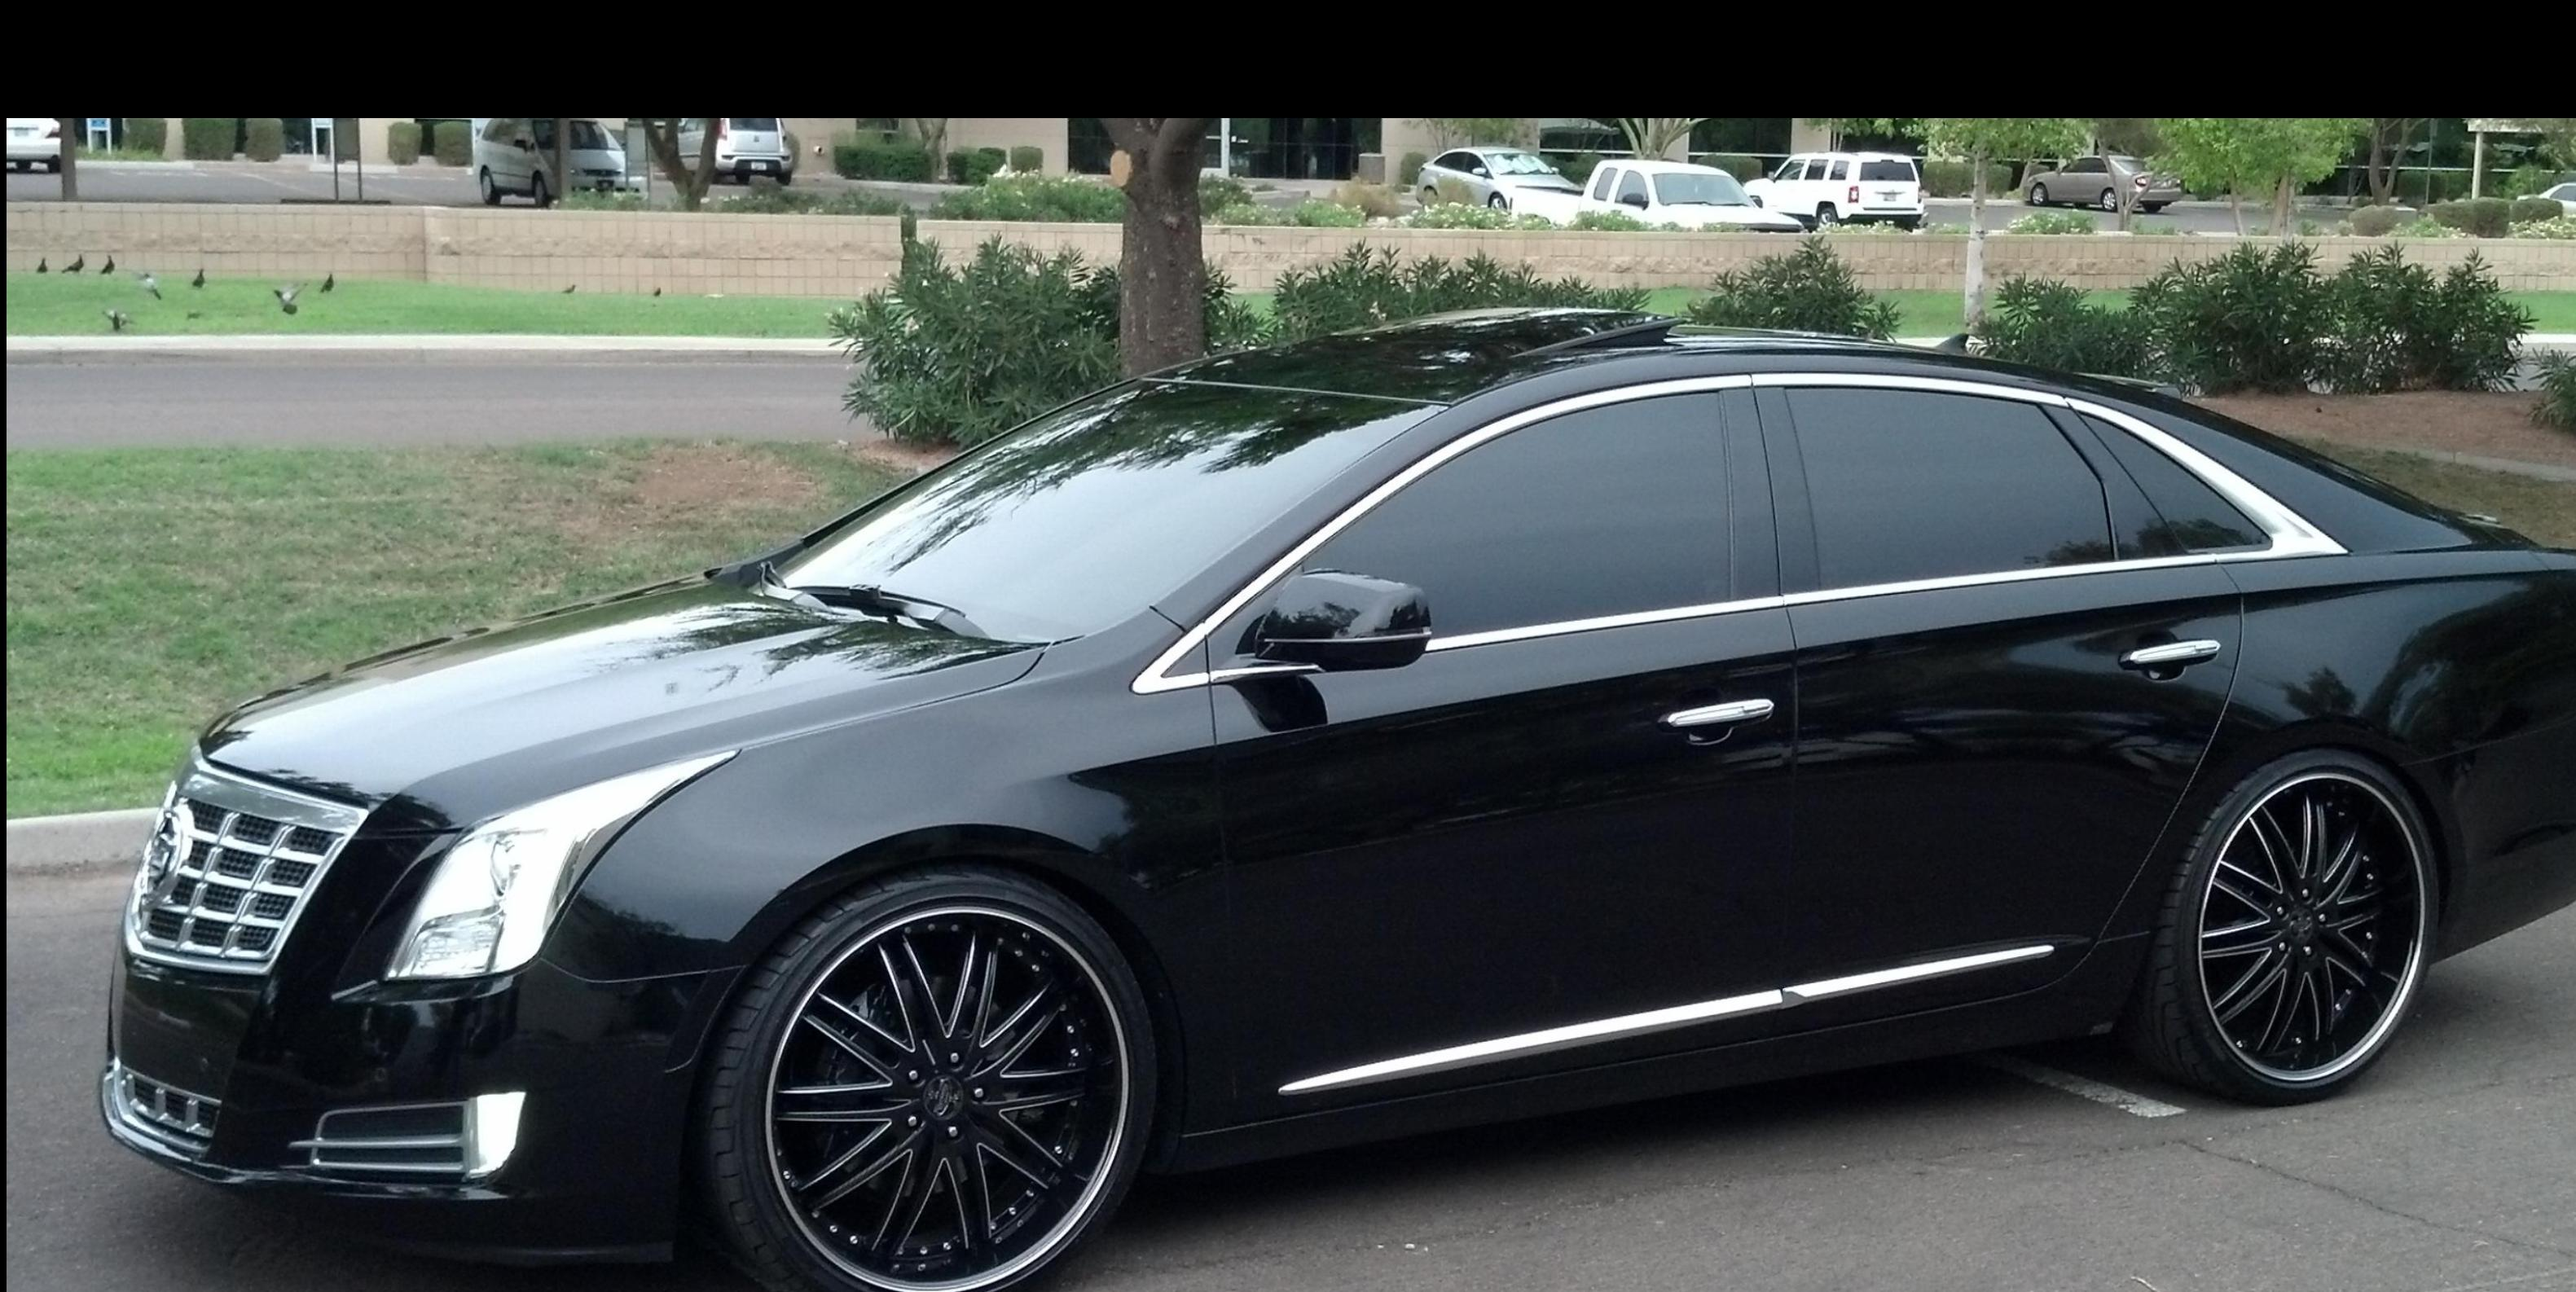 Twopumped 2014 Cadillac Xts Specs Photos Modification